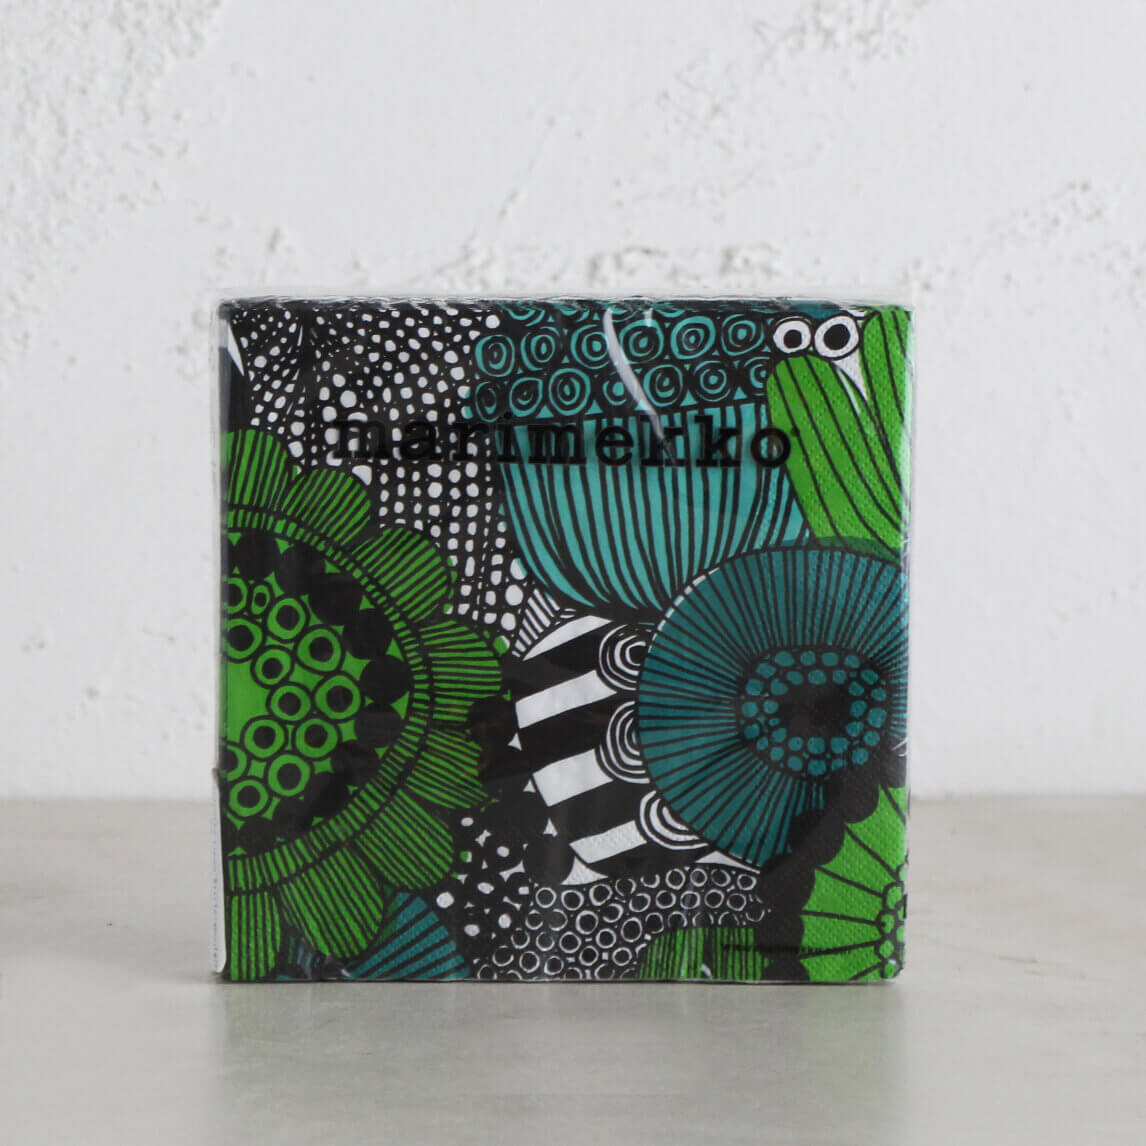 MARIMEKKO  |  SIIRTOLAPUUTARHA PAPER NAPKINS  |  GREEN + BLACK + WHITE  |  LUNCH SERVIETTES